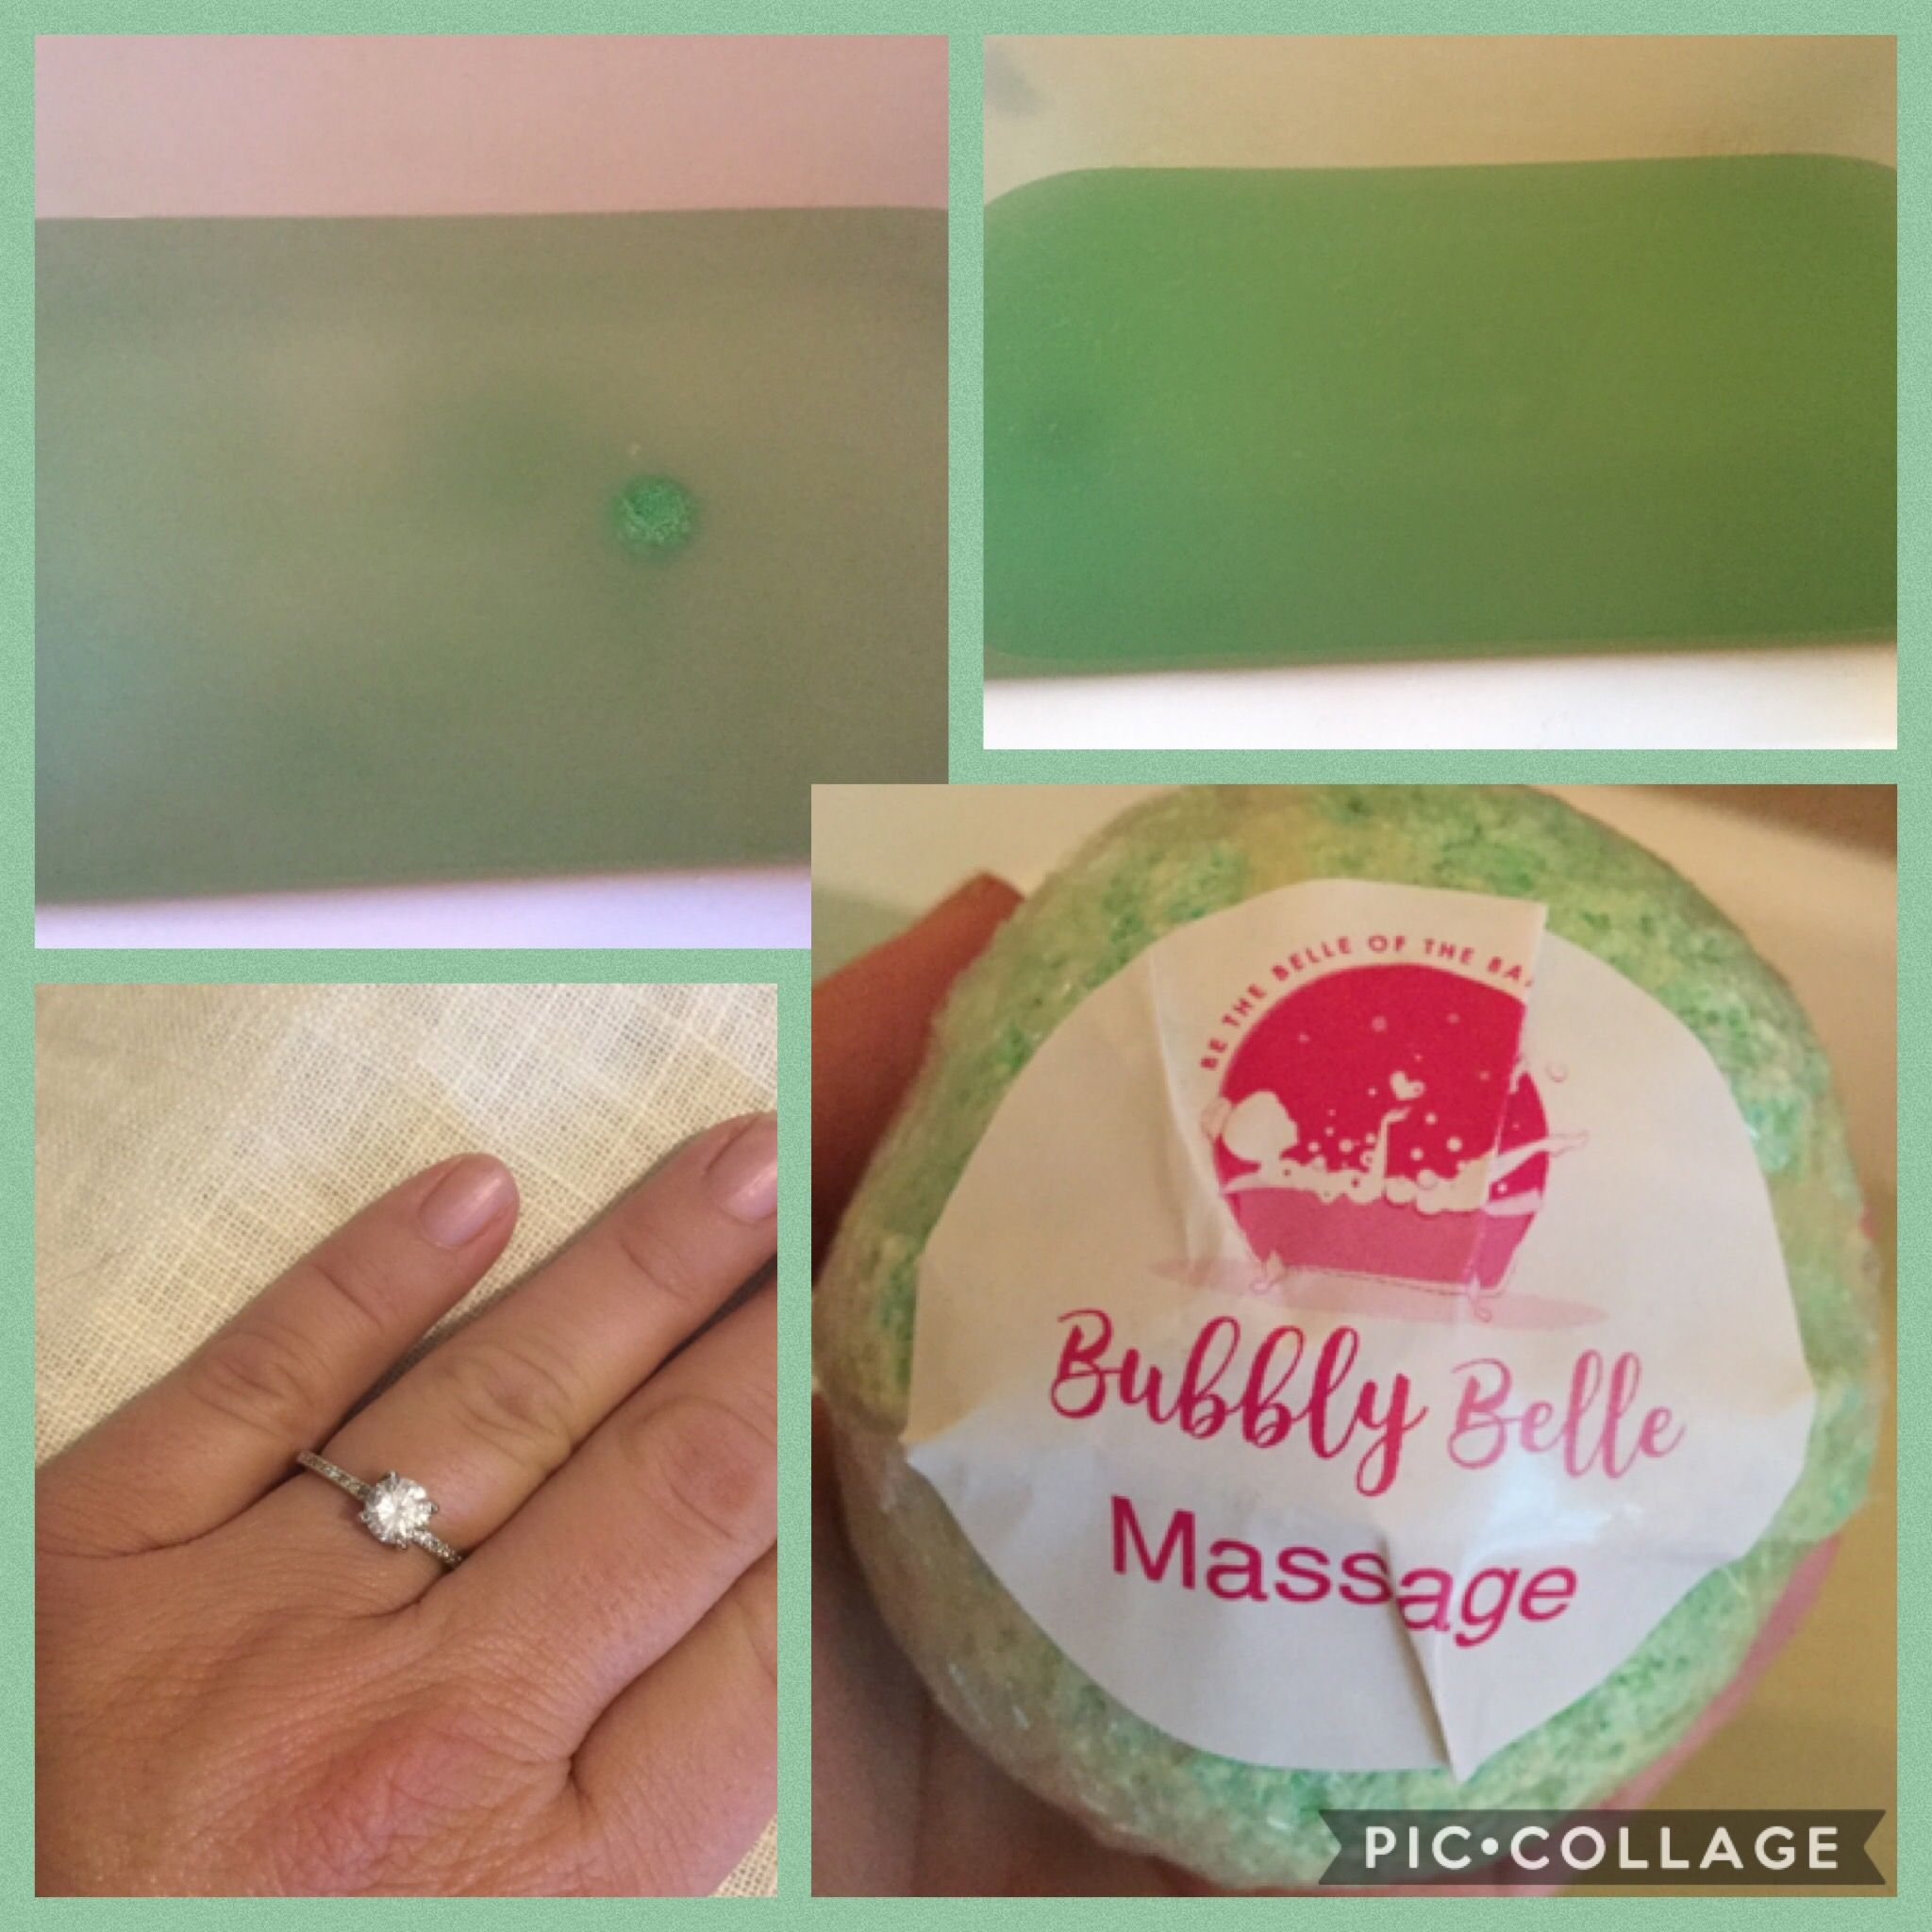 Bubbly Belle Massage Bomb Bubbles Bath Bombs Gifts